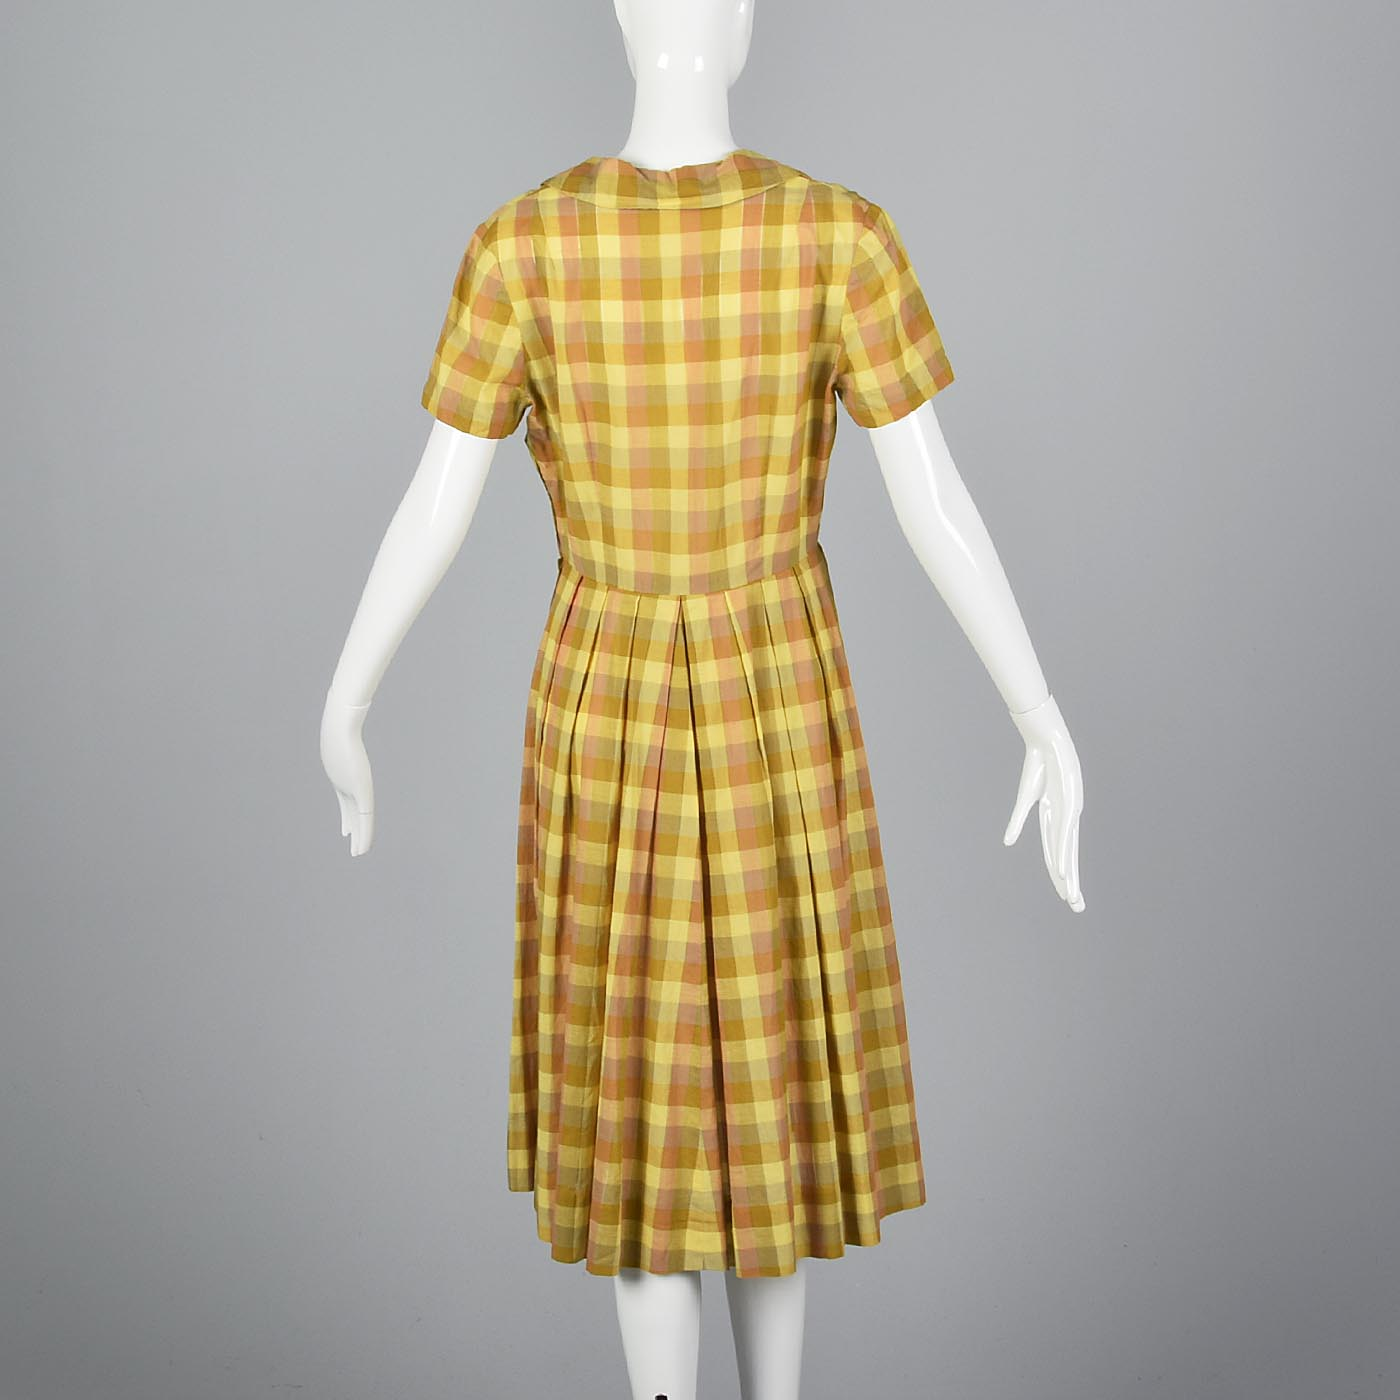 1950s Yellow Plaid Cotton Day Dress